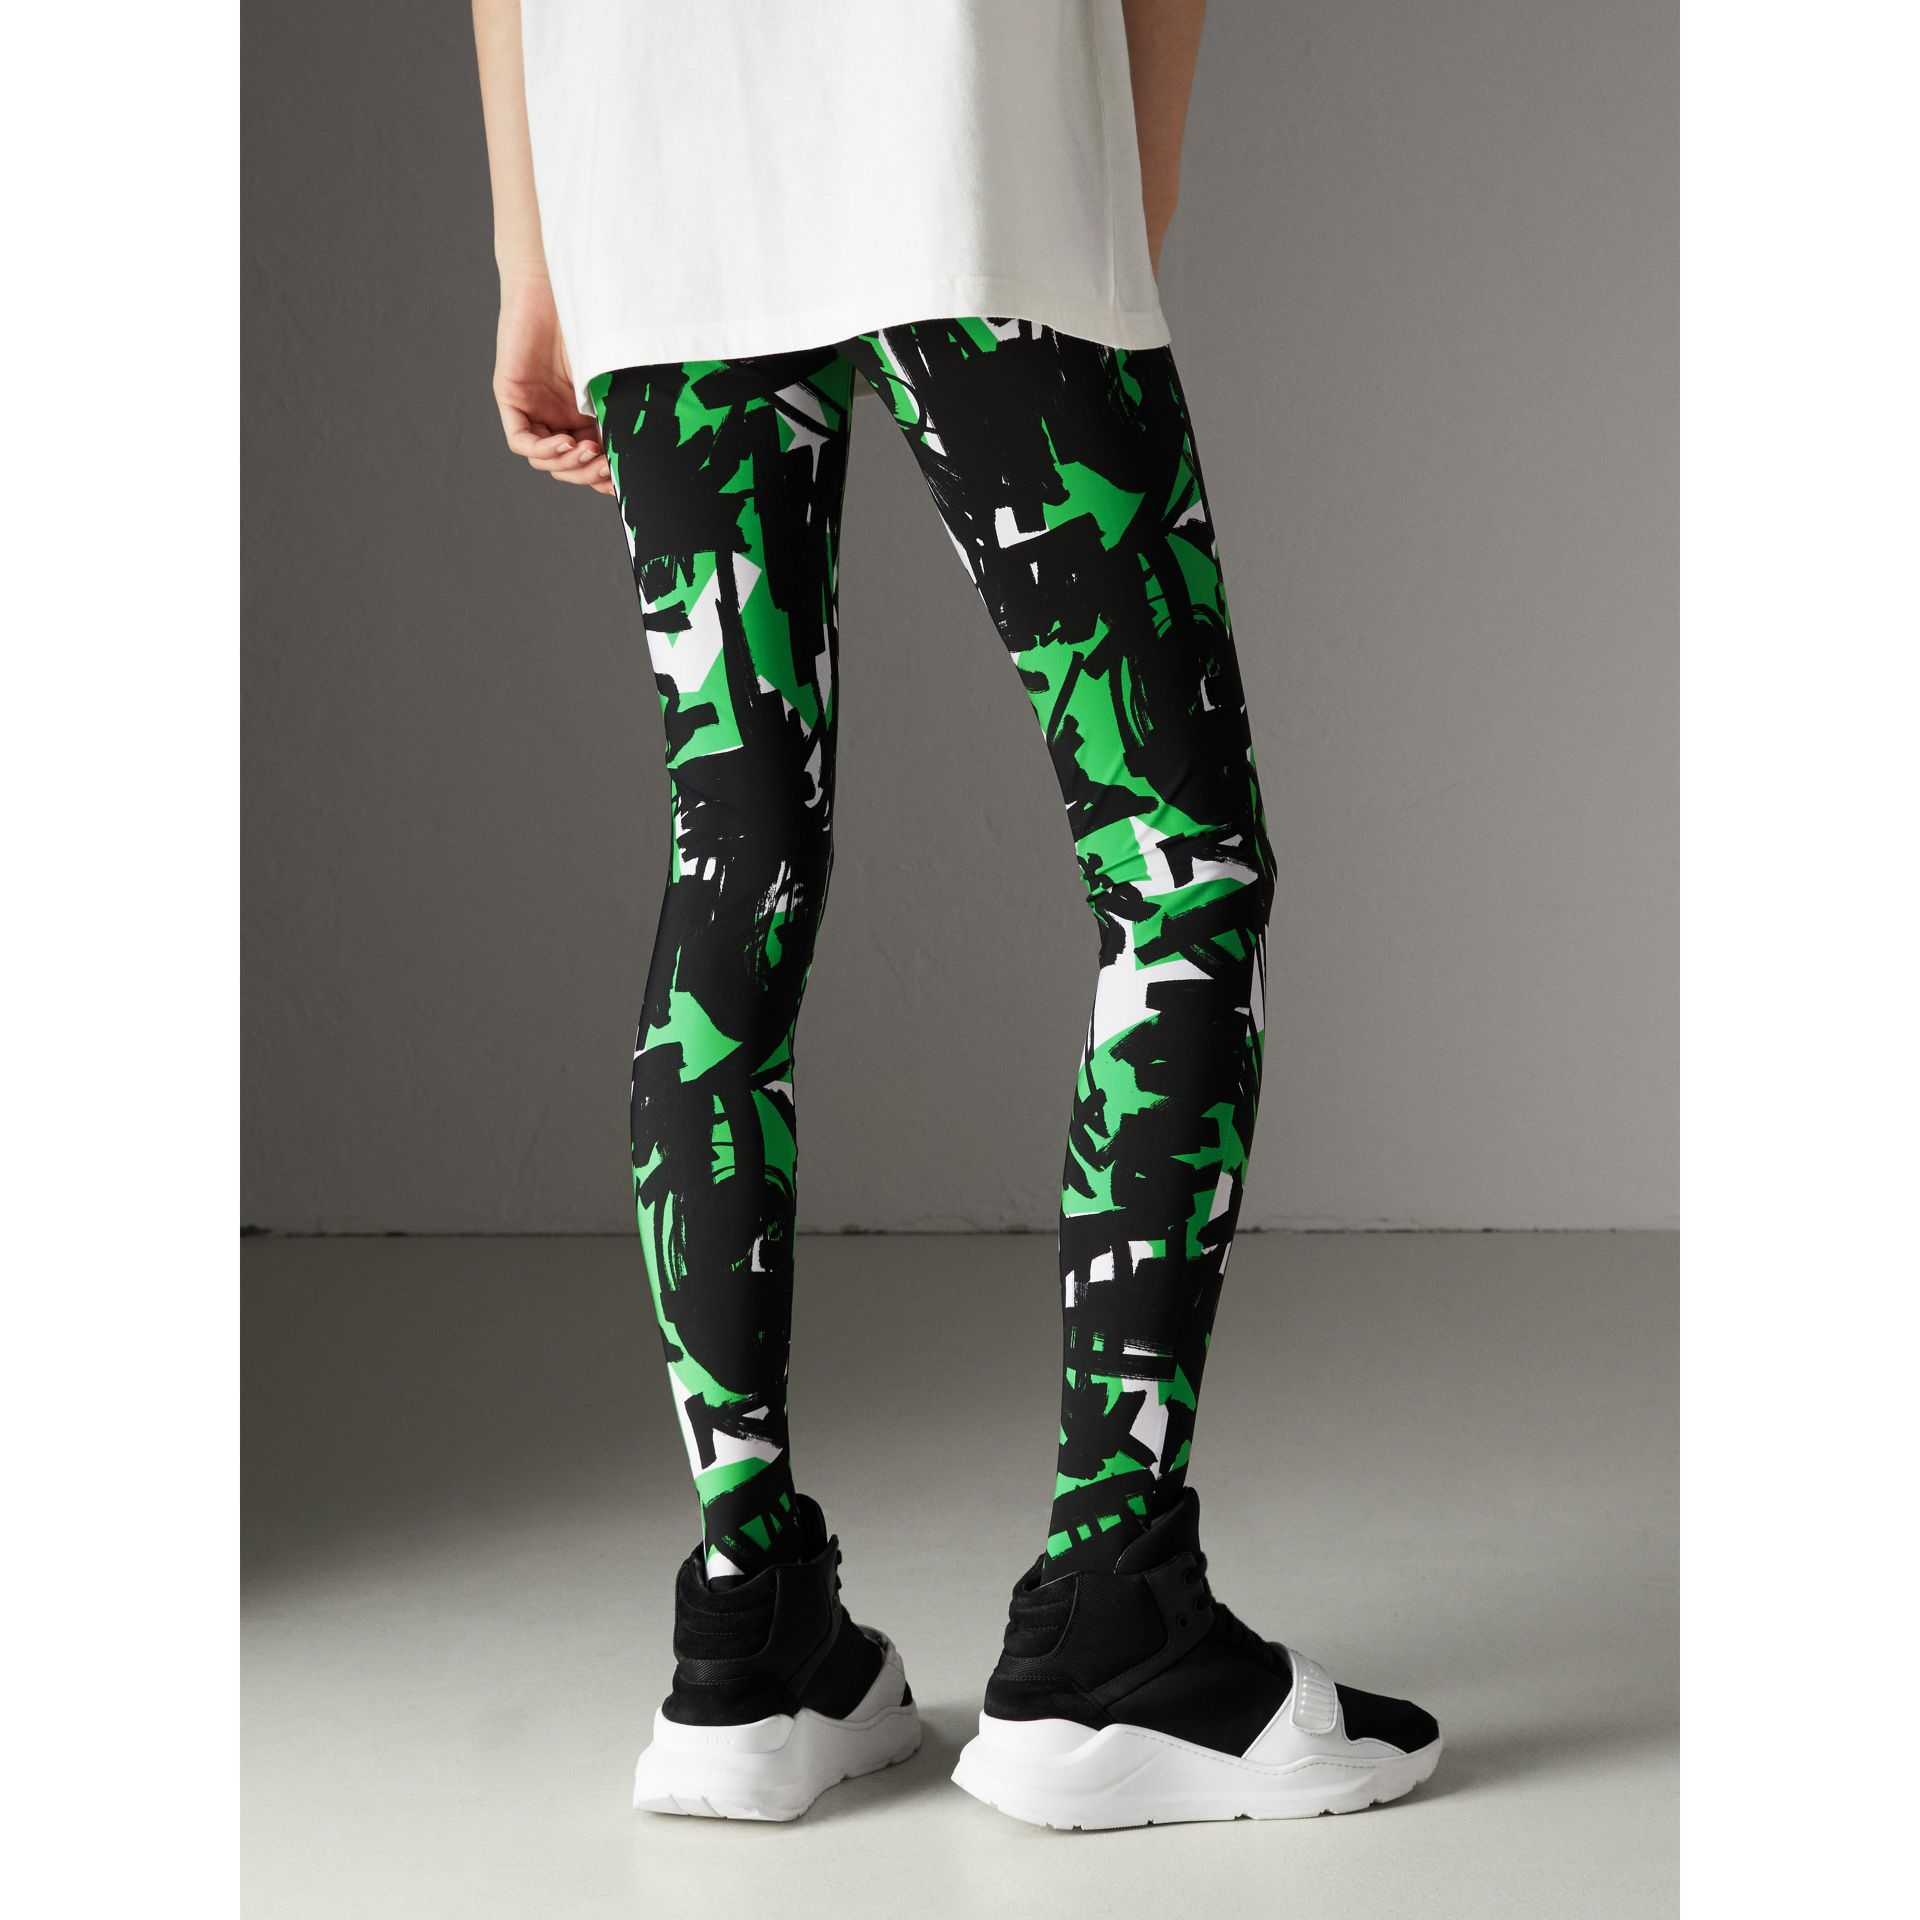 Graffiti Print Leggings in Neon Green - Women | Burberry Australia - gallery image 2